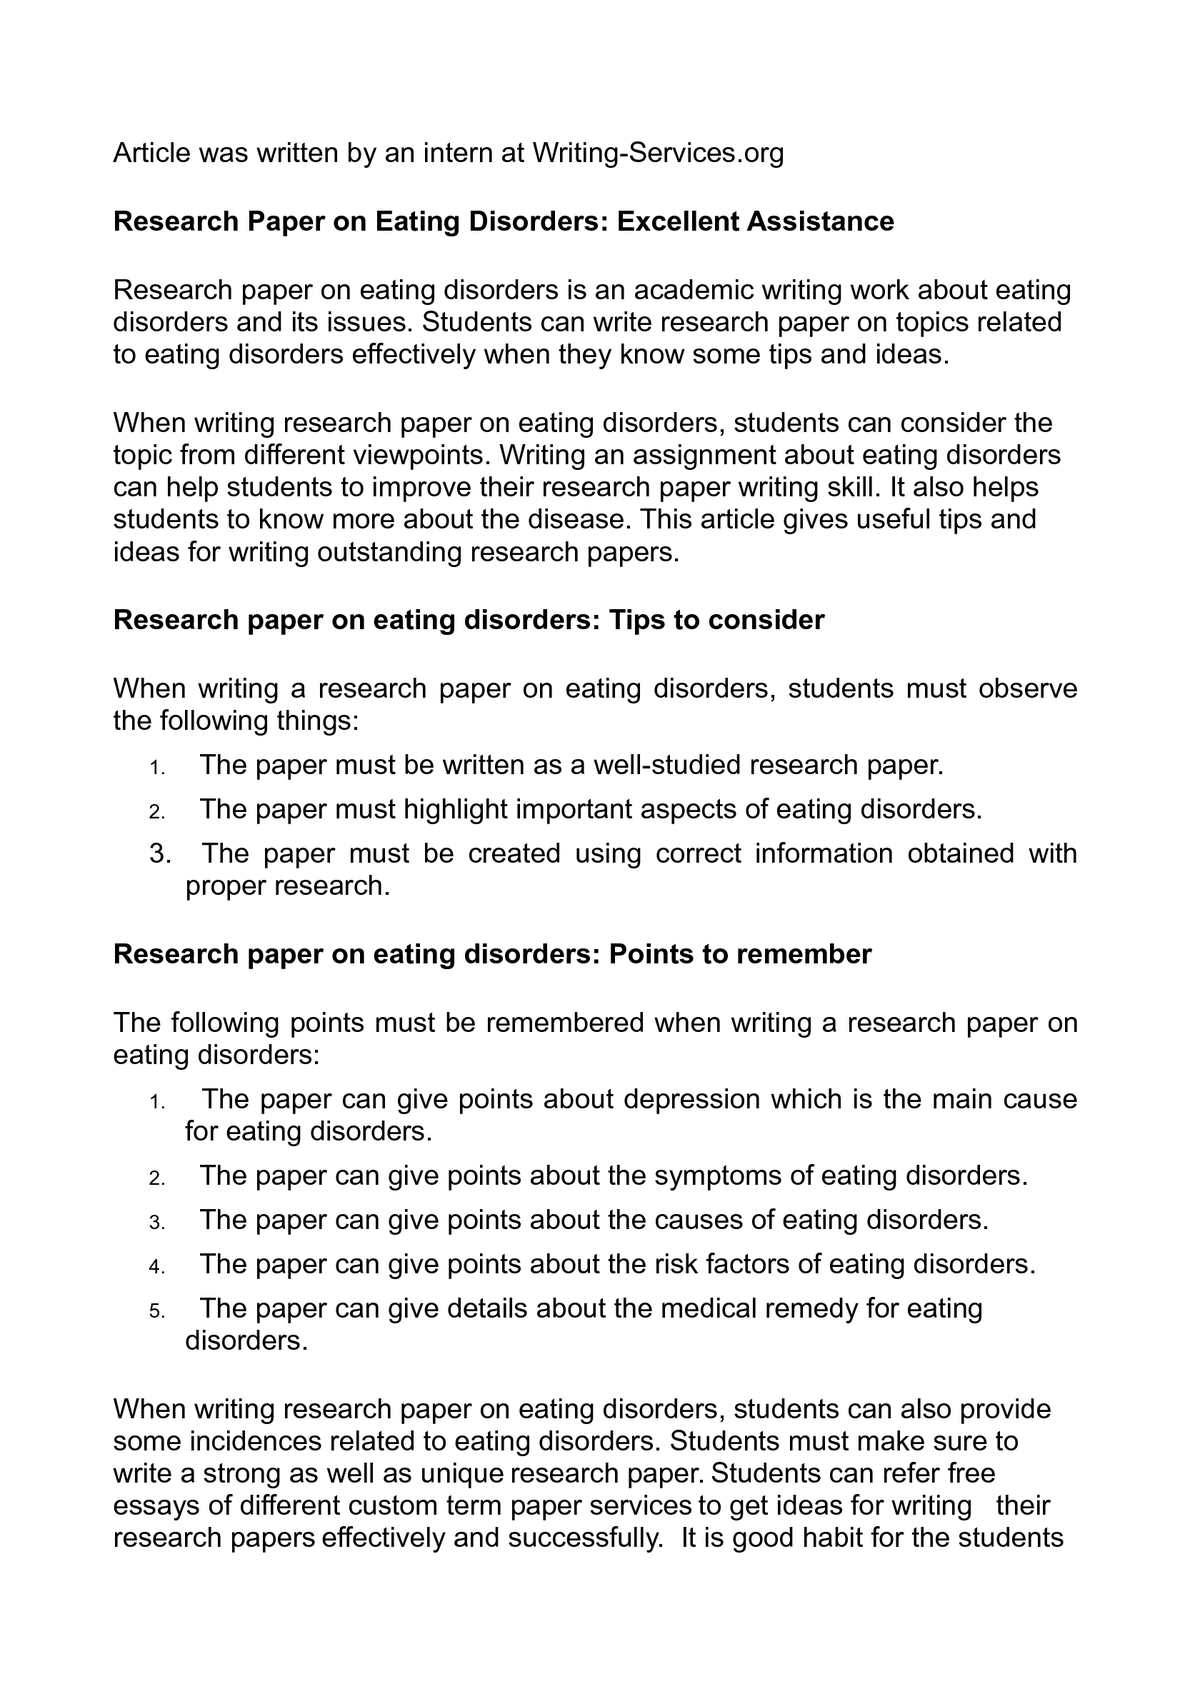 002 Examples Of Researchs On Eating Disorders P1 Frightening Research Papers Full